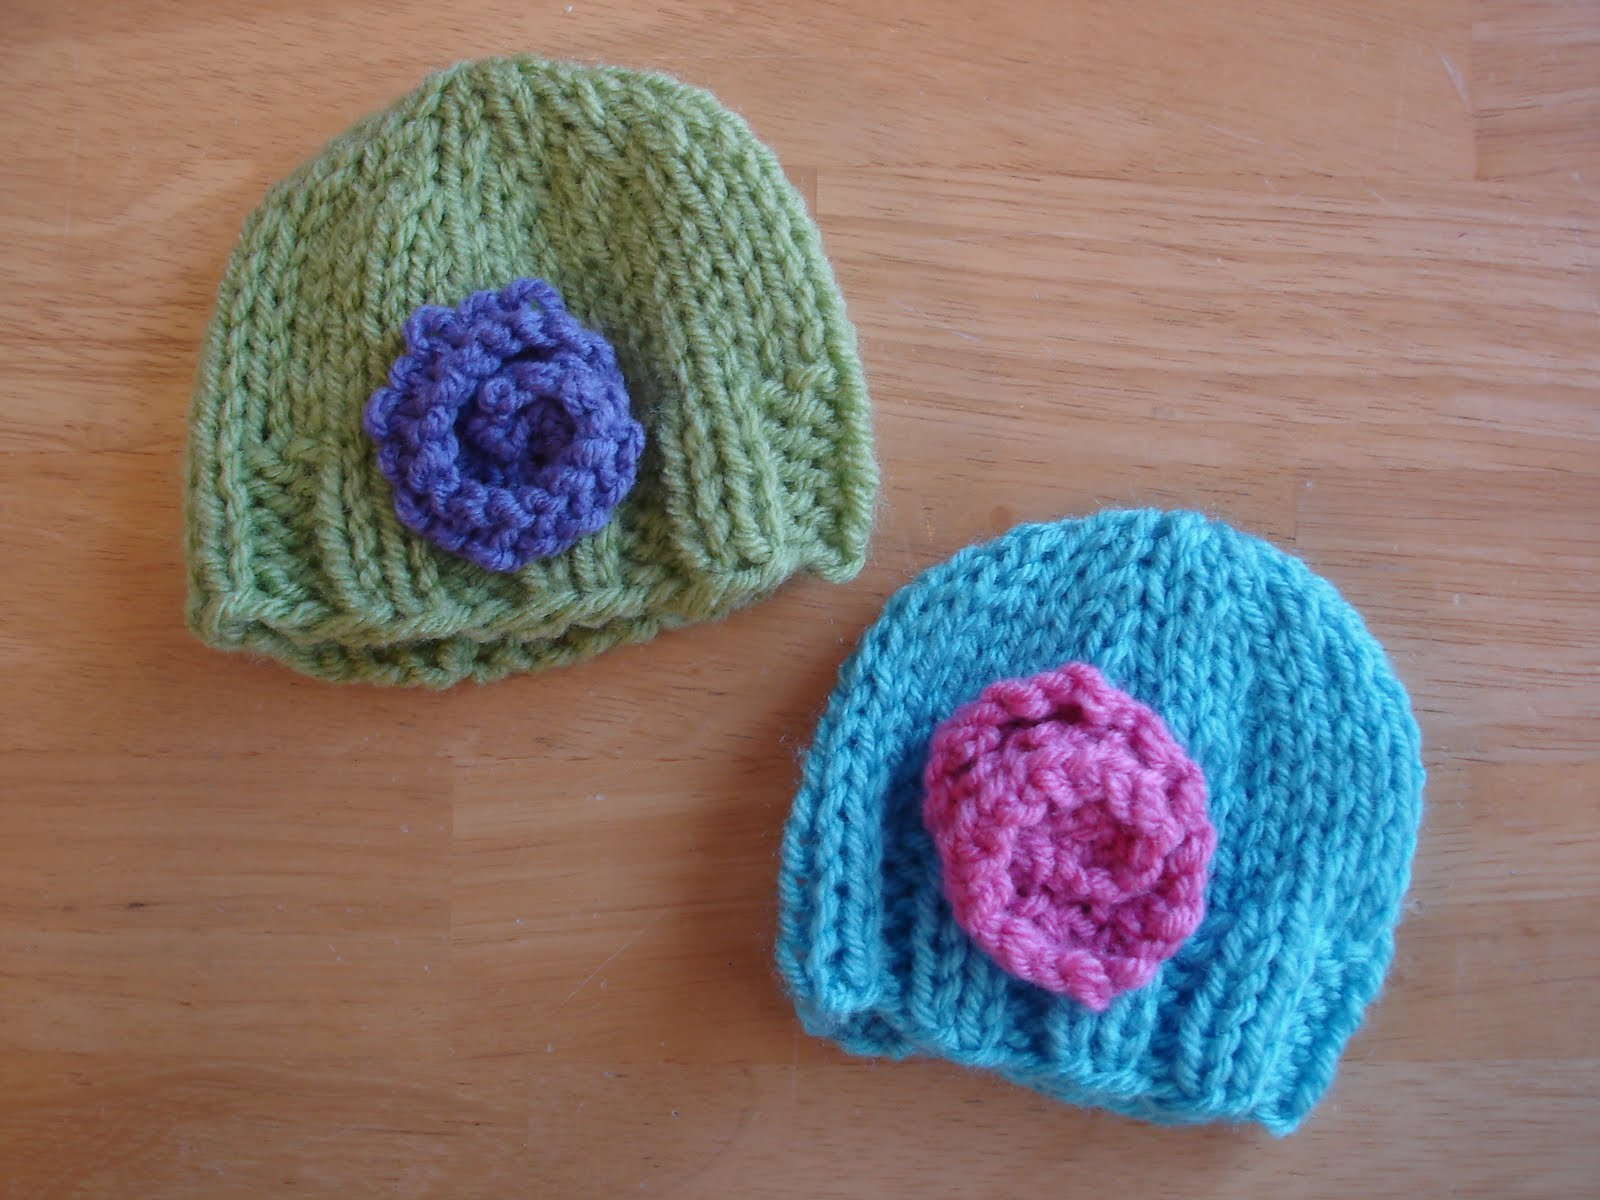 Knitted Baby Beanies Free Patterns : Fiber Flux: Free Knitting Pattern...Baby Doll Hats!